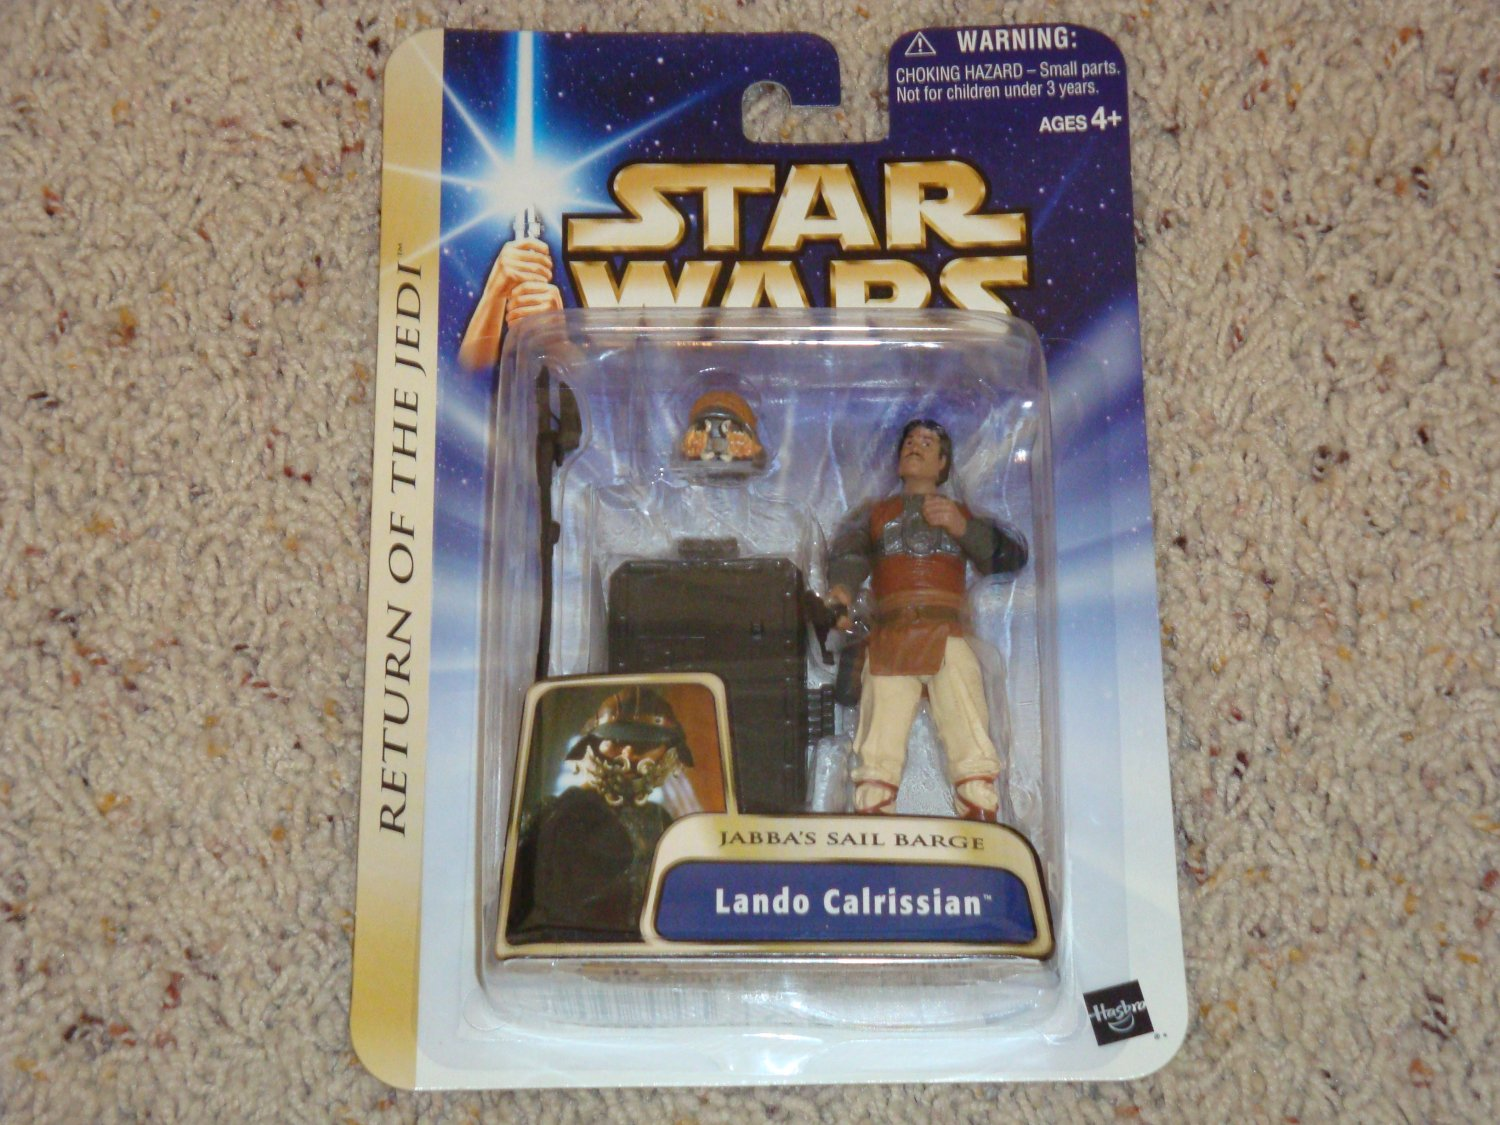 Star Wars Return of the Jedi Lando Calrissian Jabba's Sail Barge 04/07 New in Package